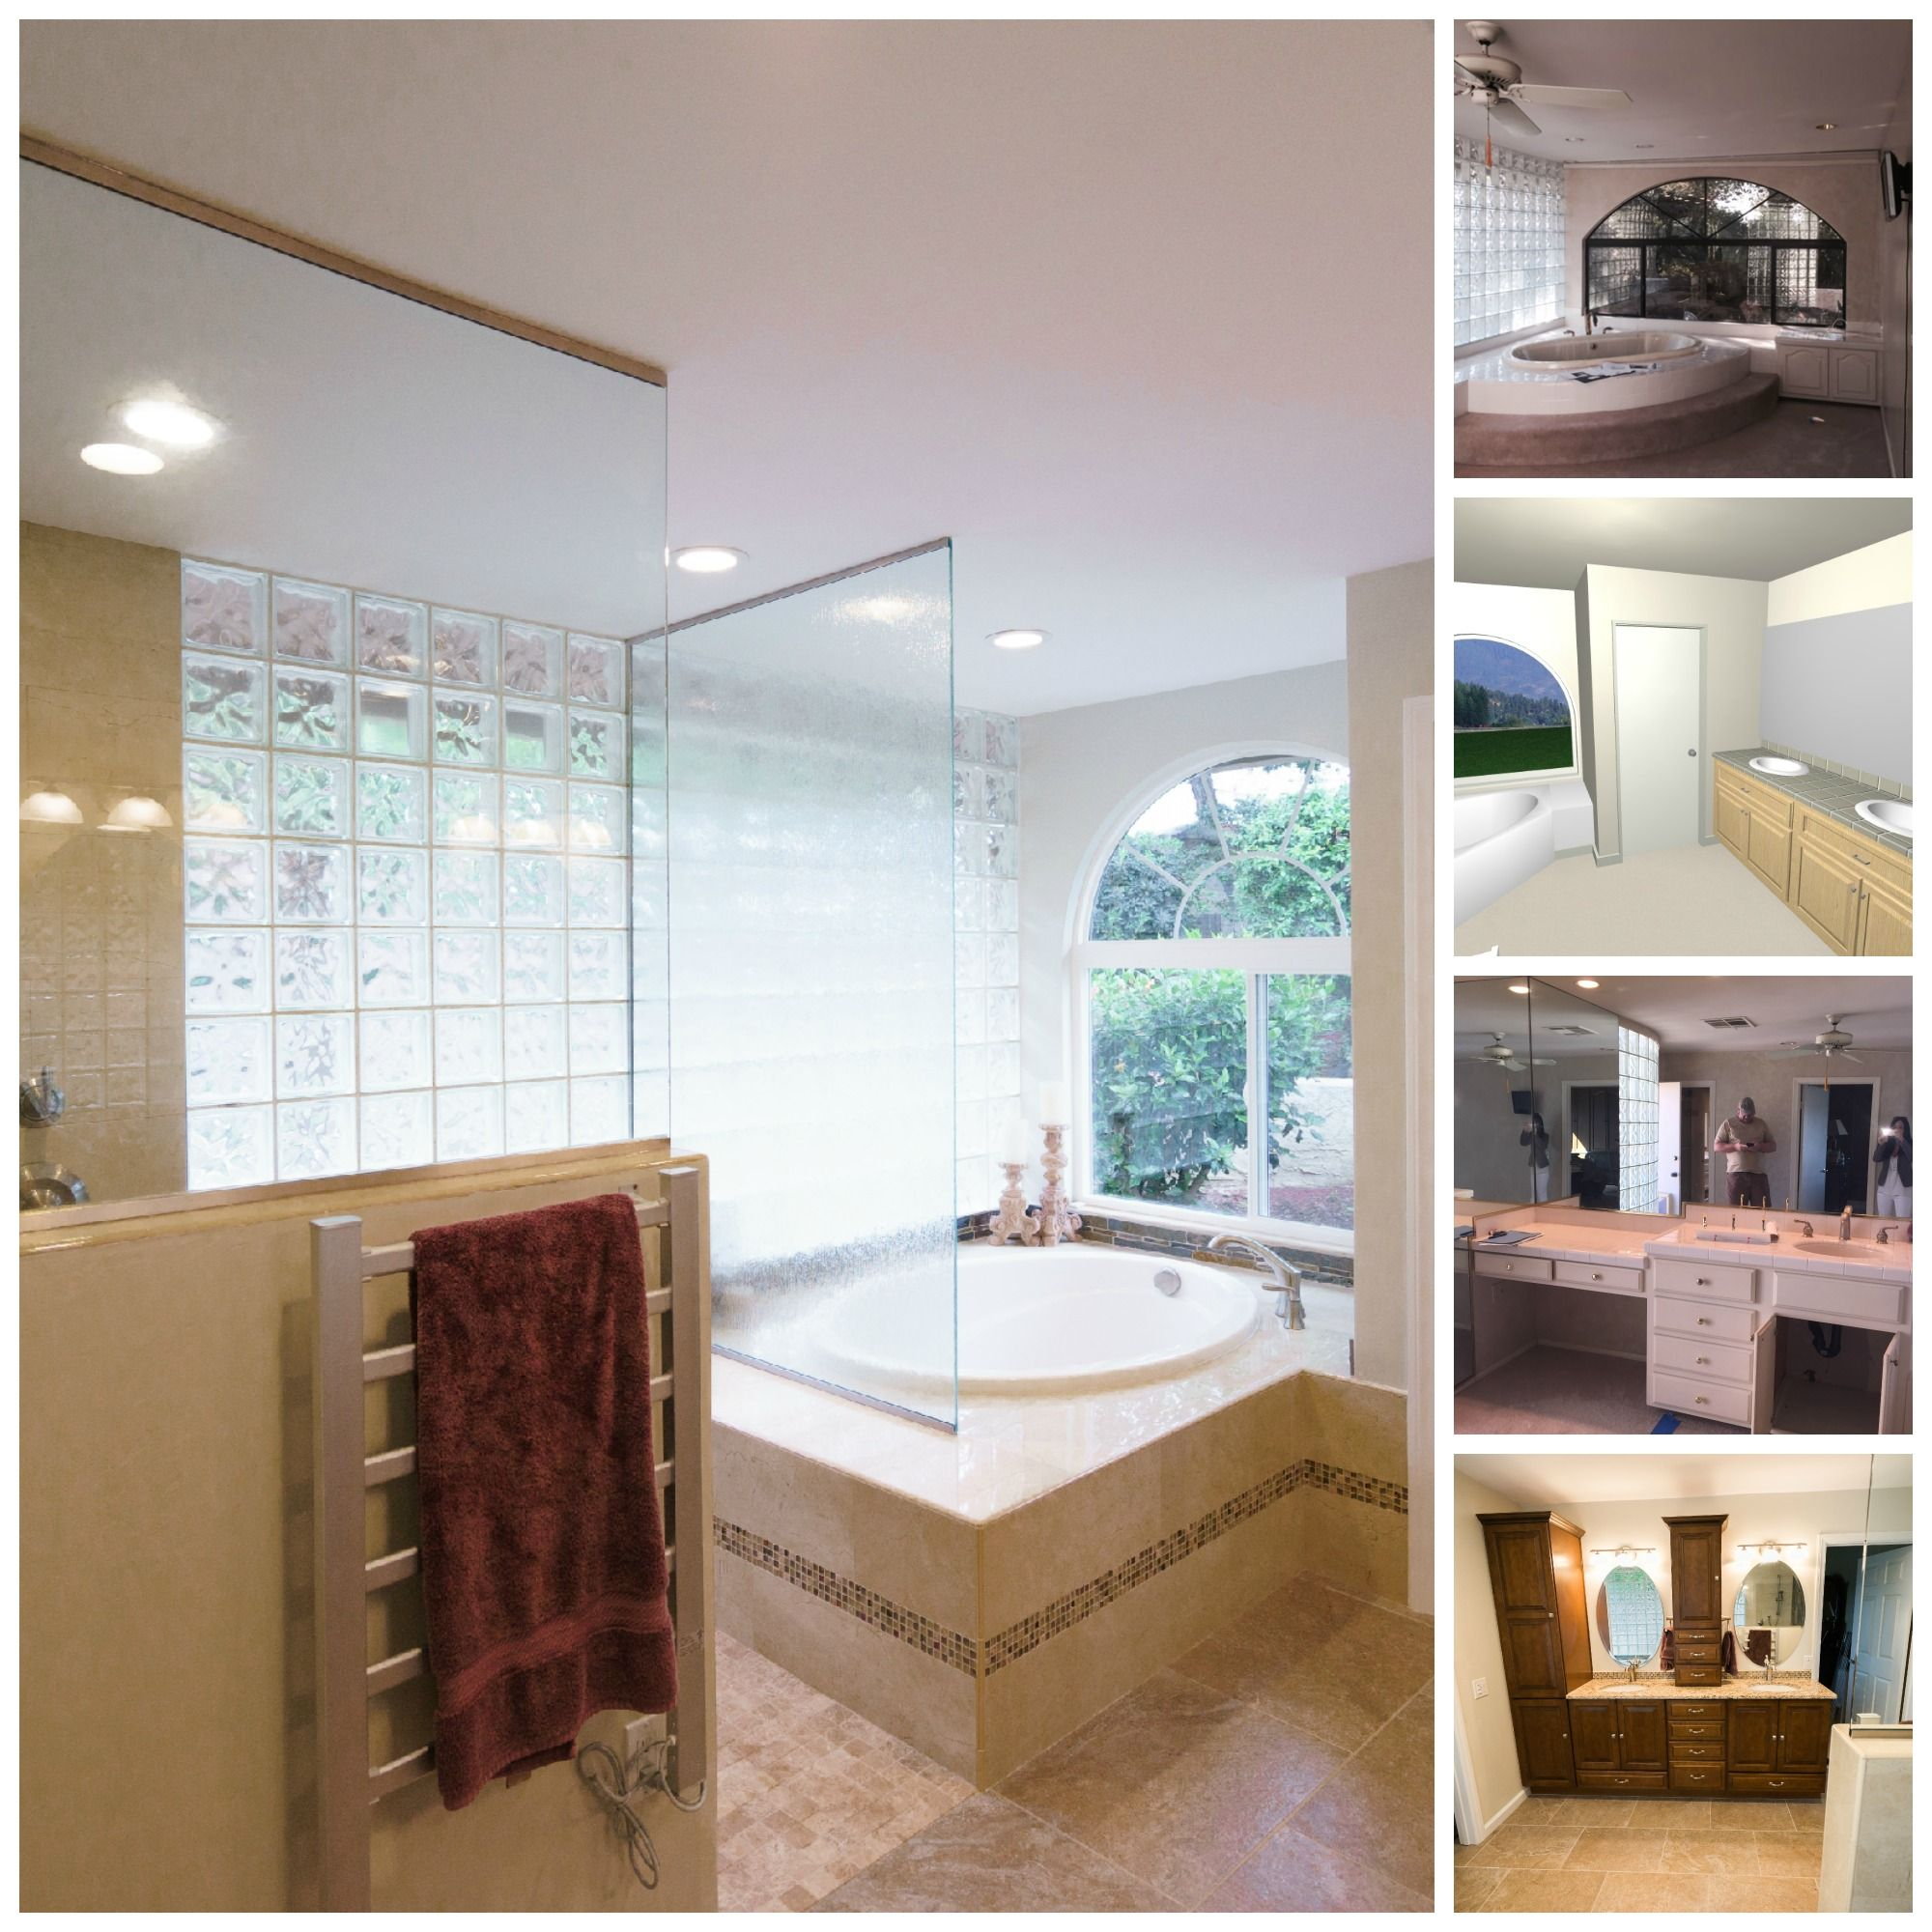 Kitchen And Bathroom Remodeling Contractors: Home, Kitchen, Bath Remodel Ideas